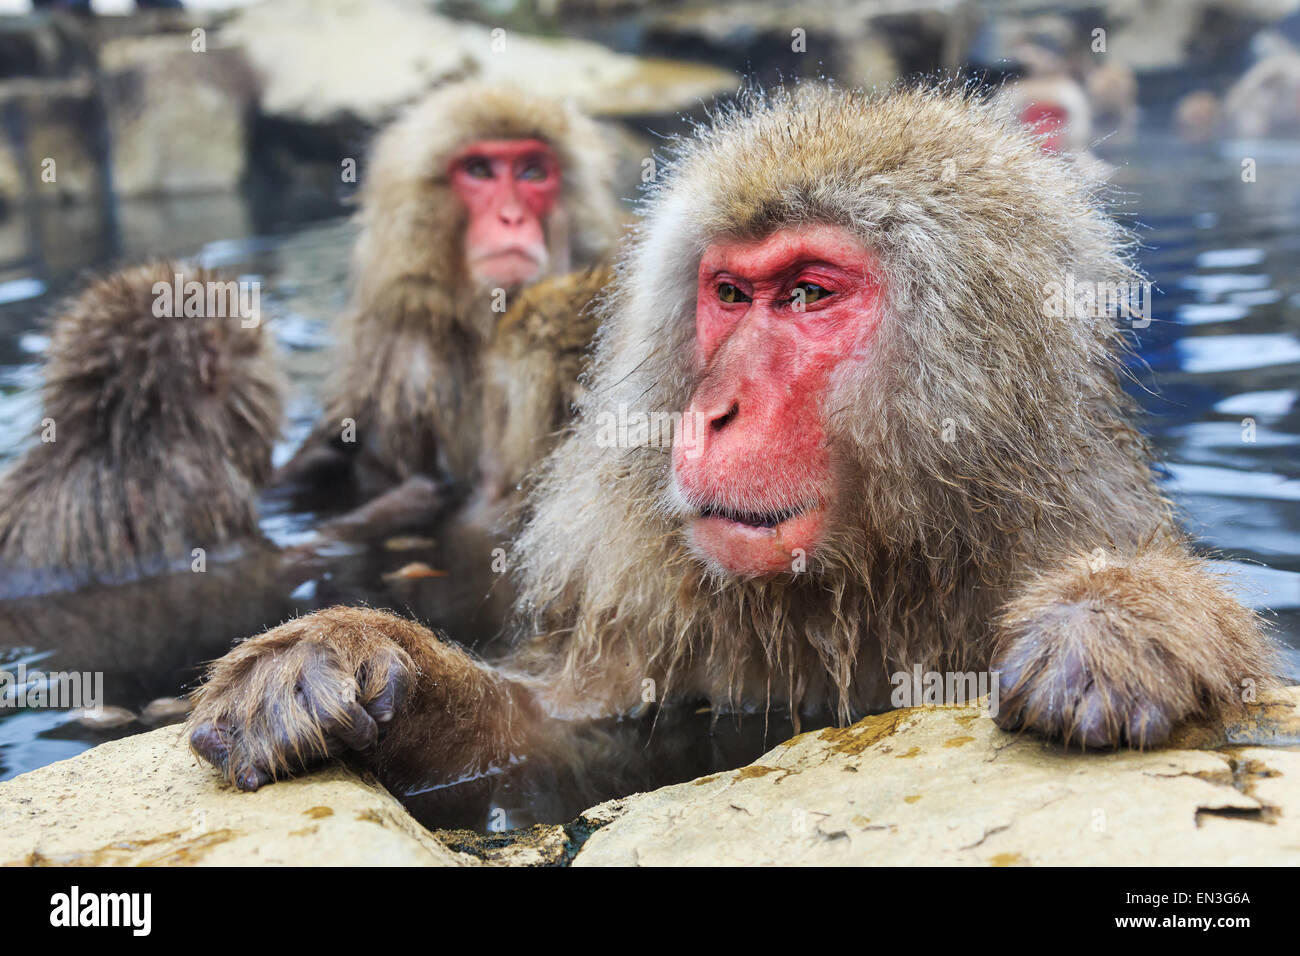 Snow monkeys in a natural onsen (hot spring), located in Jigokudani Park, Yudanaka. Nagano Japan. - Stock Image